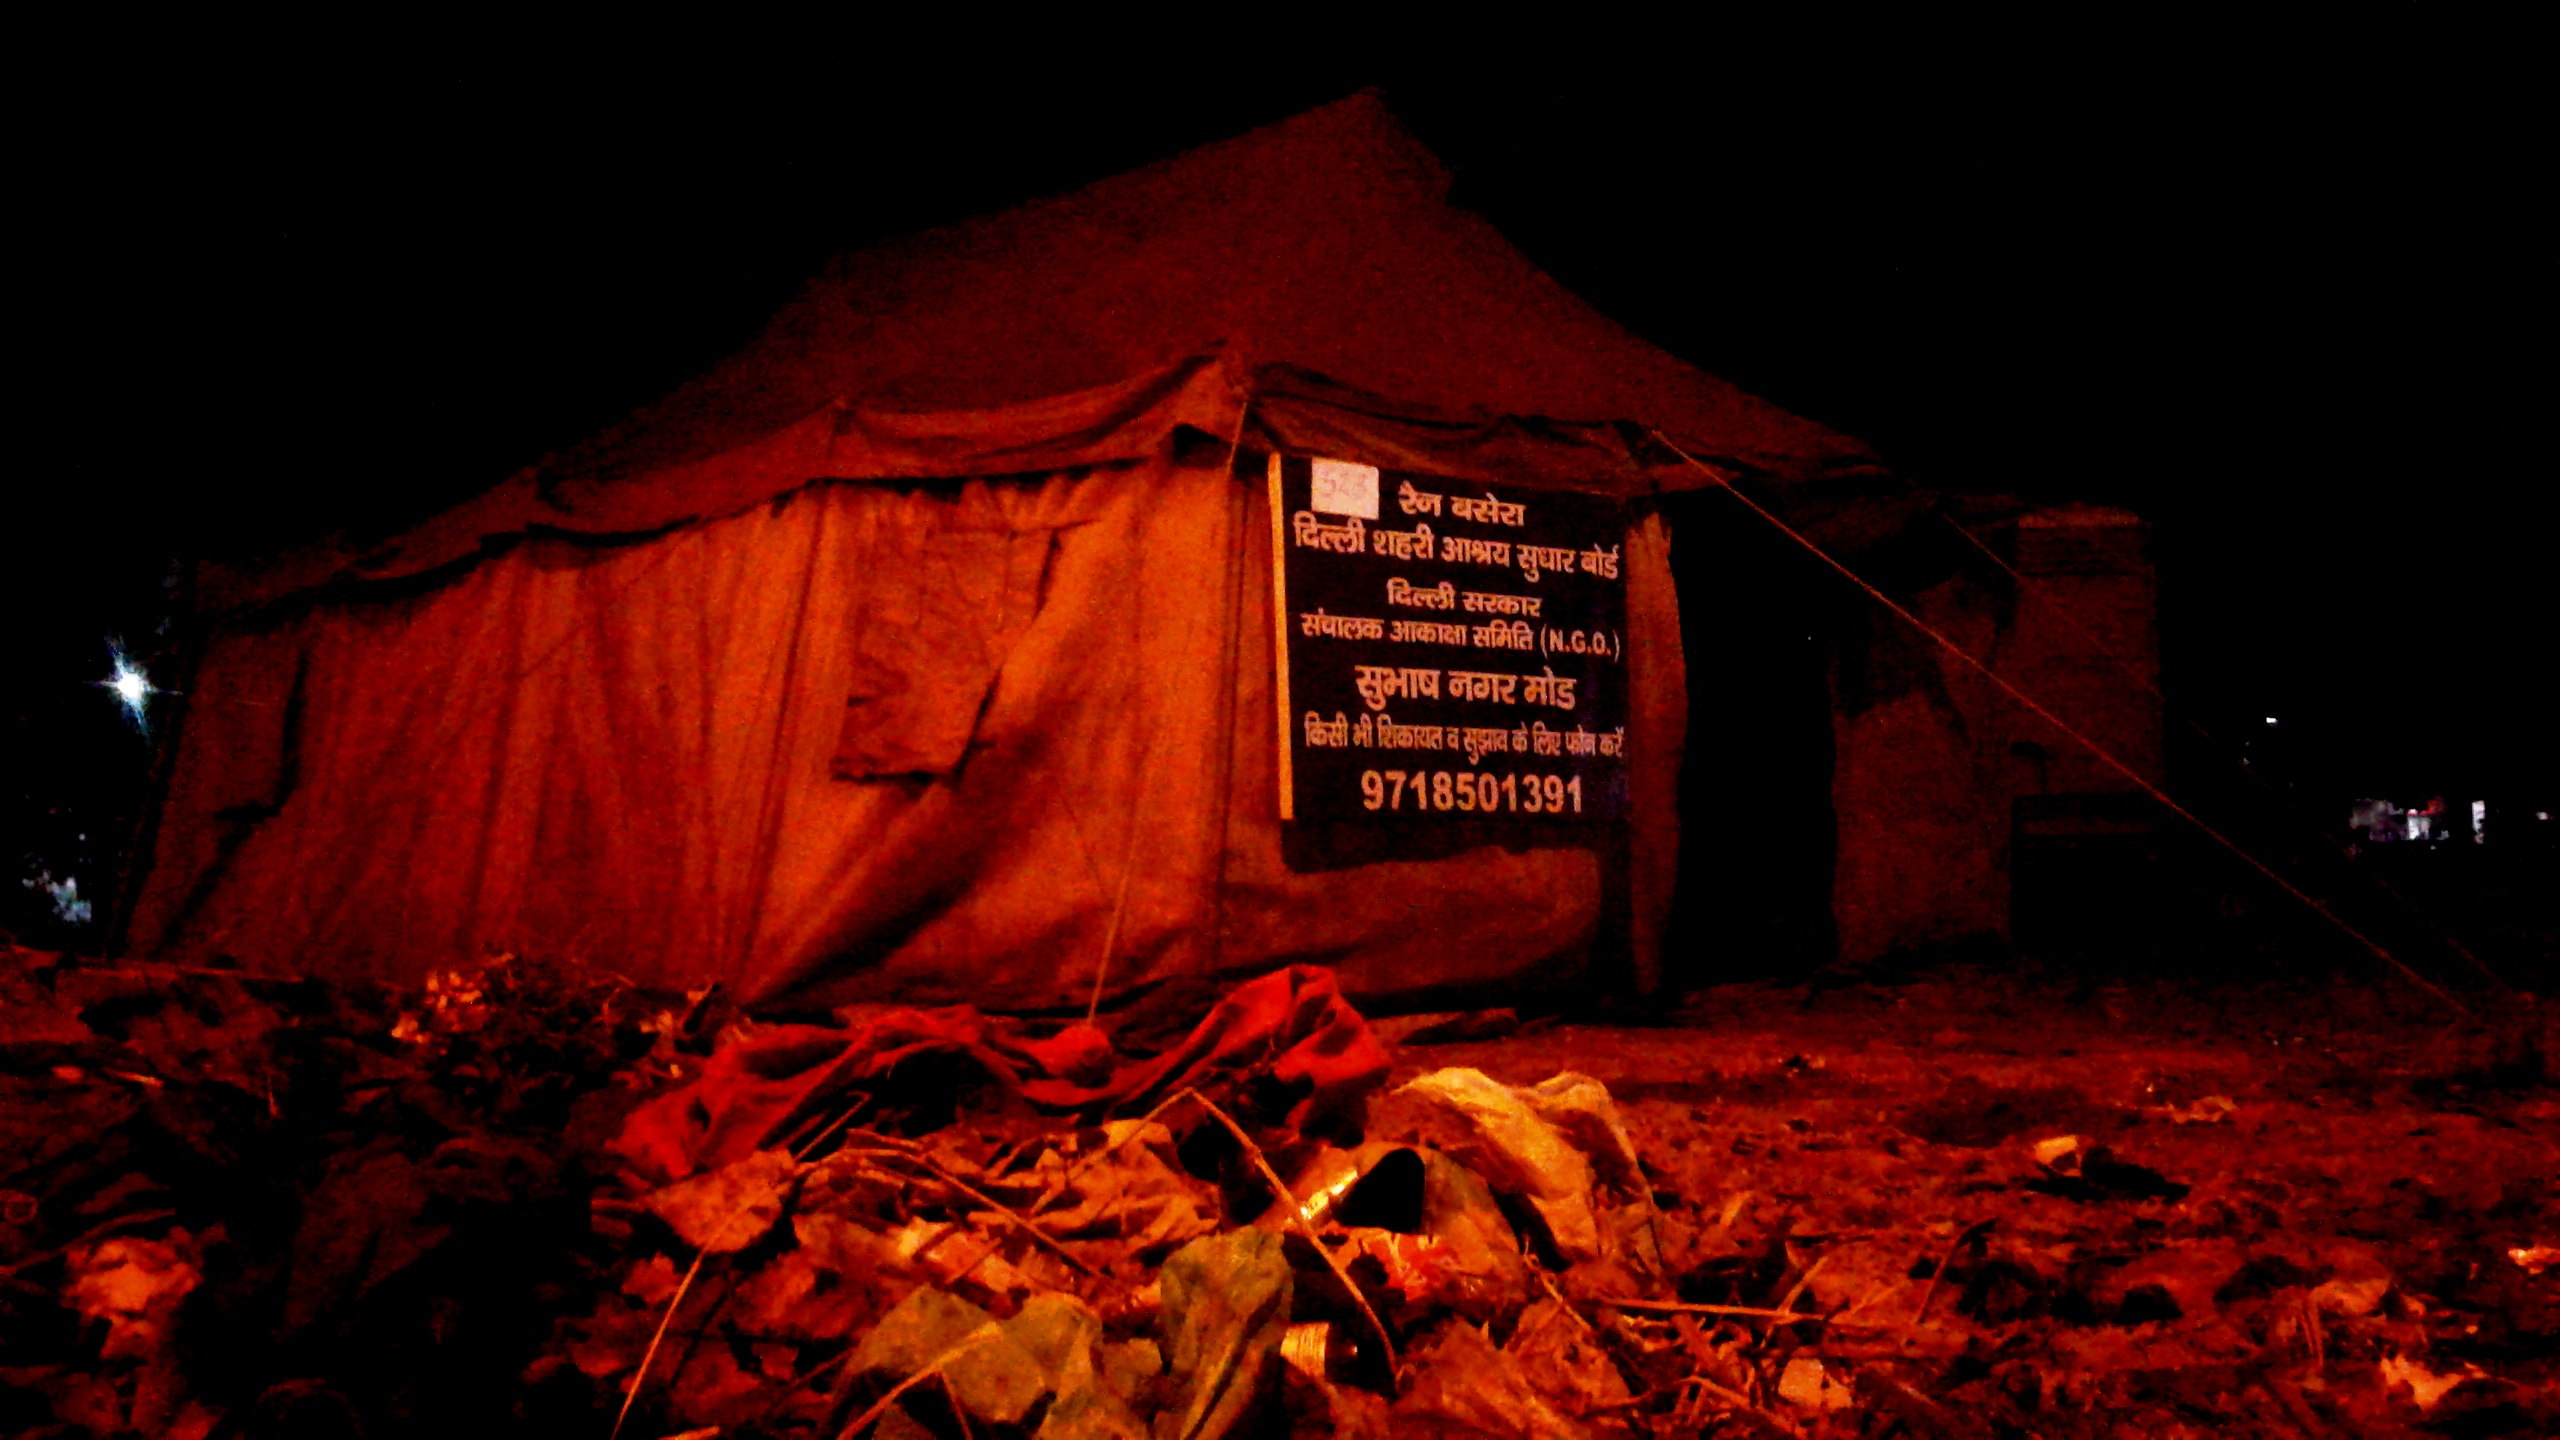 A tent build by the government.